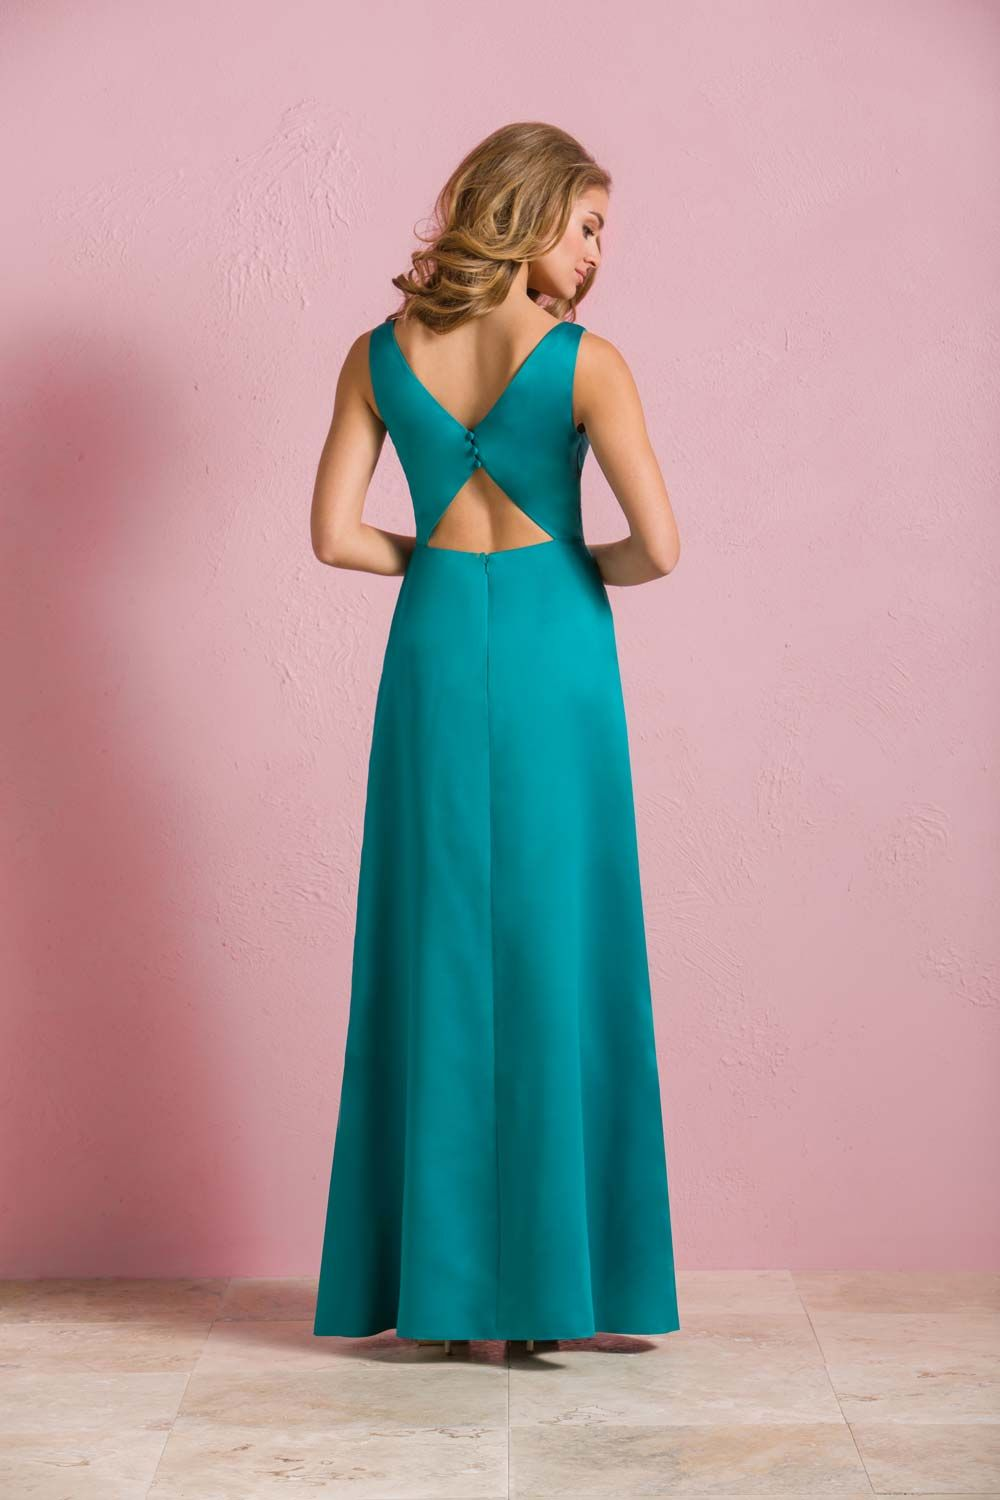 Teal Bridesmaid Dresses: 15 of Our Favourite Styles